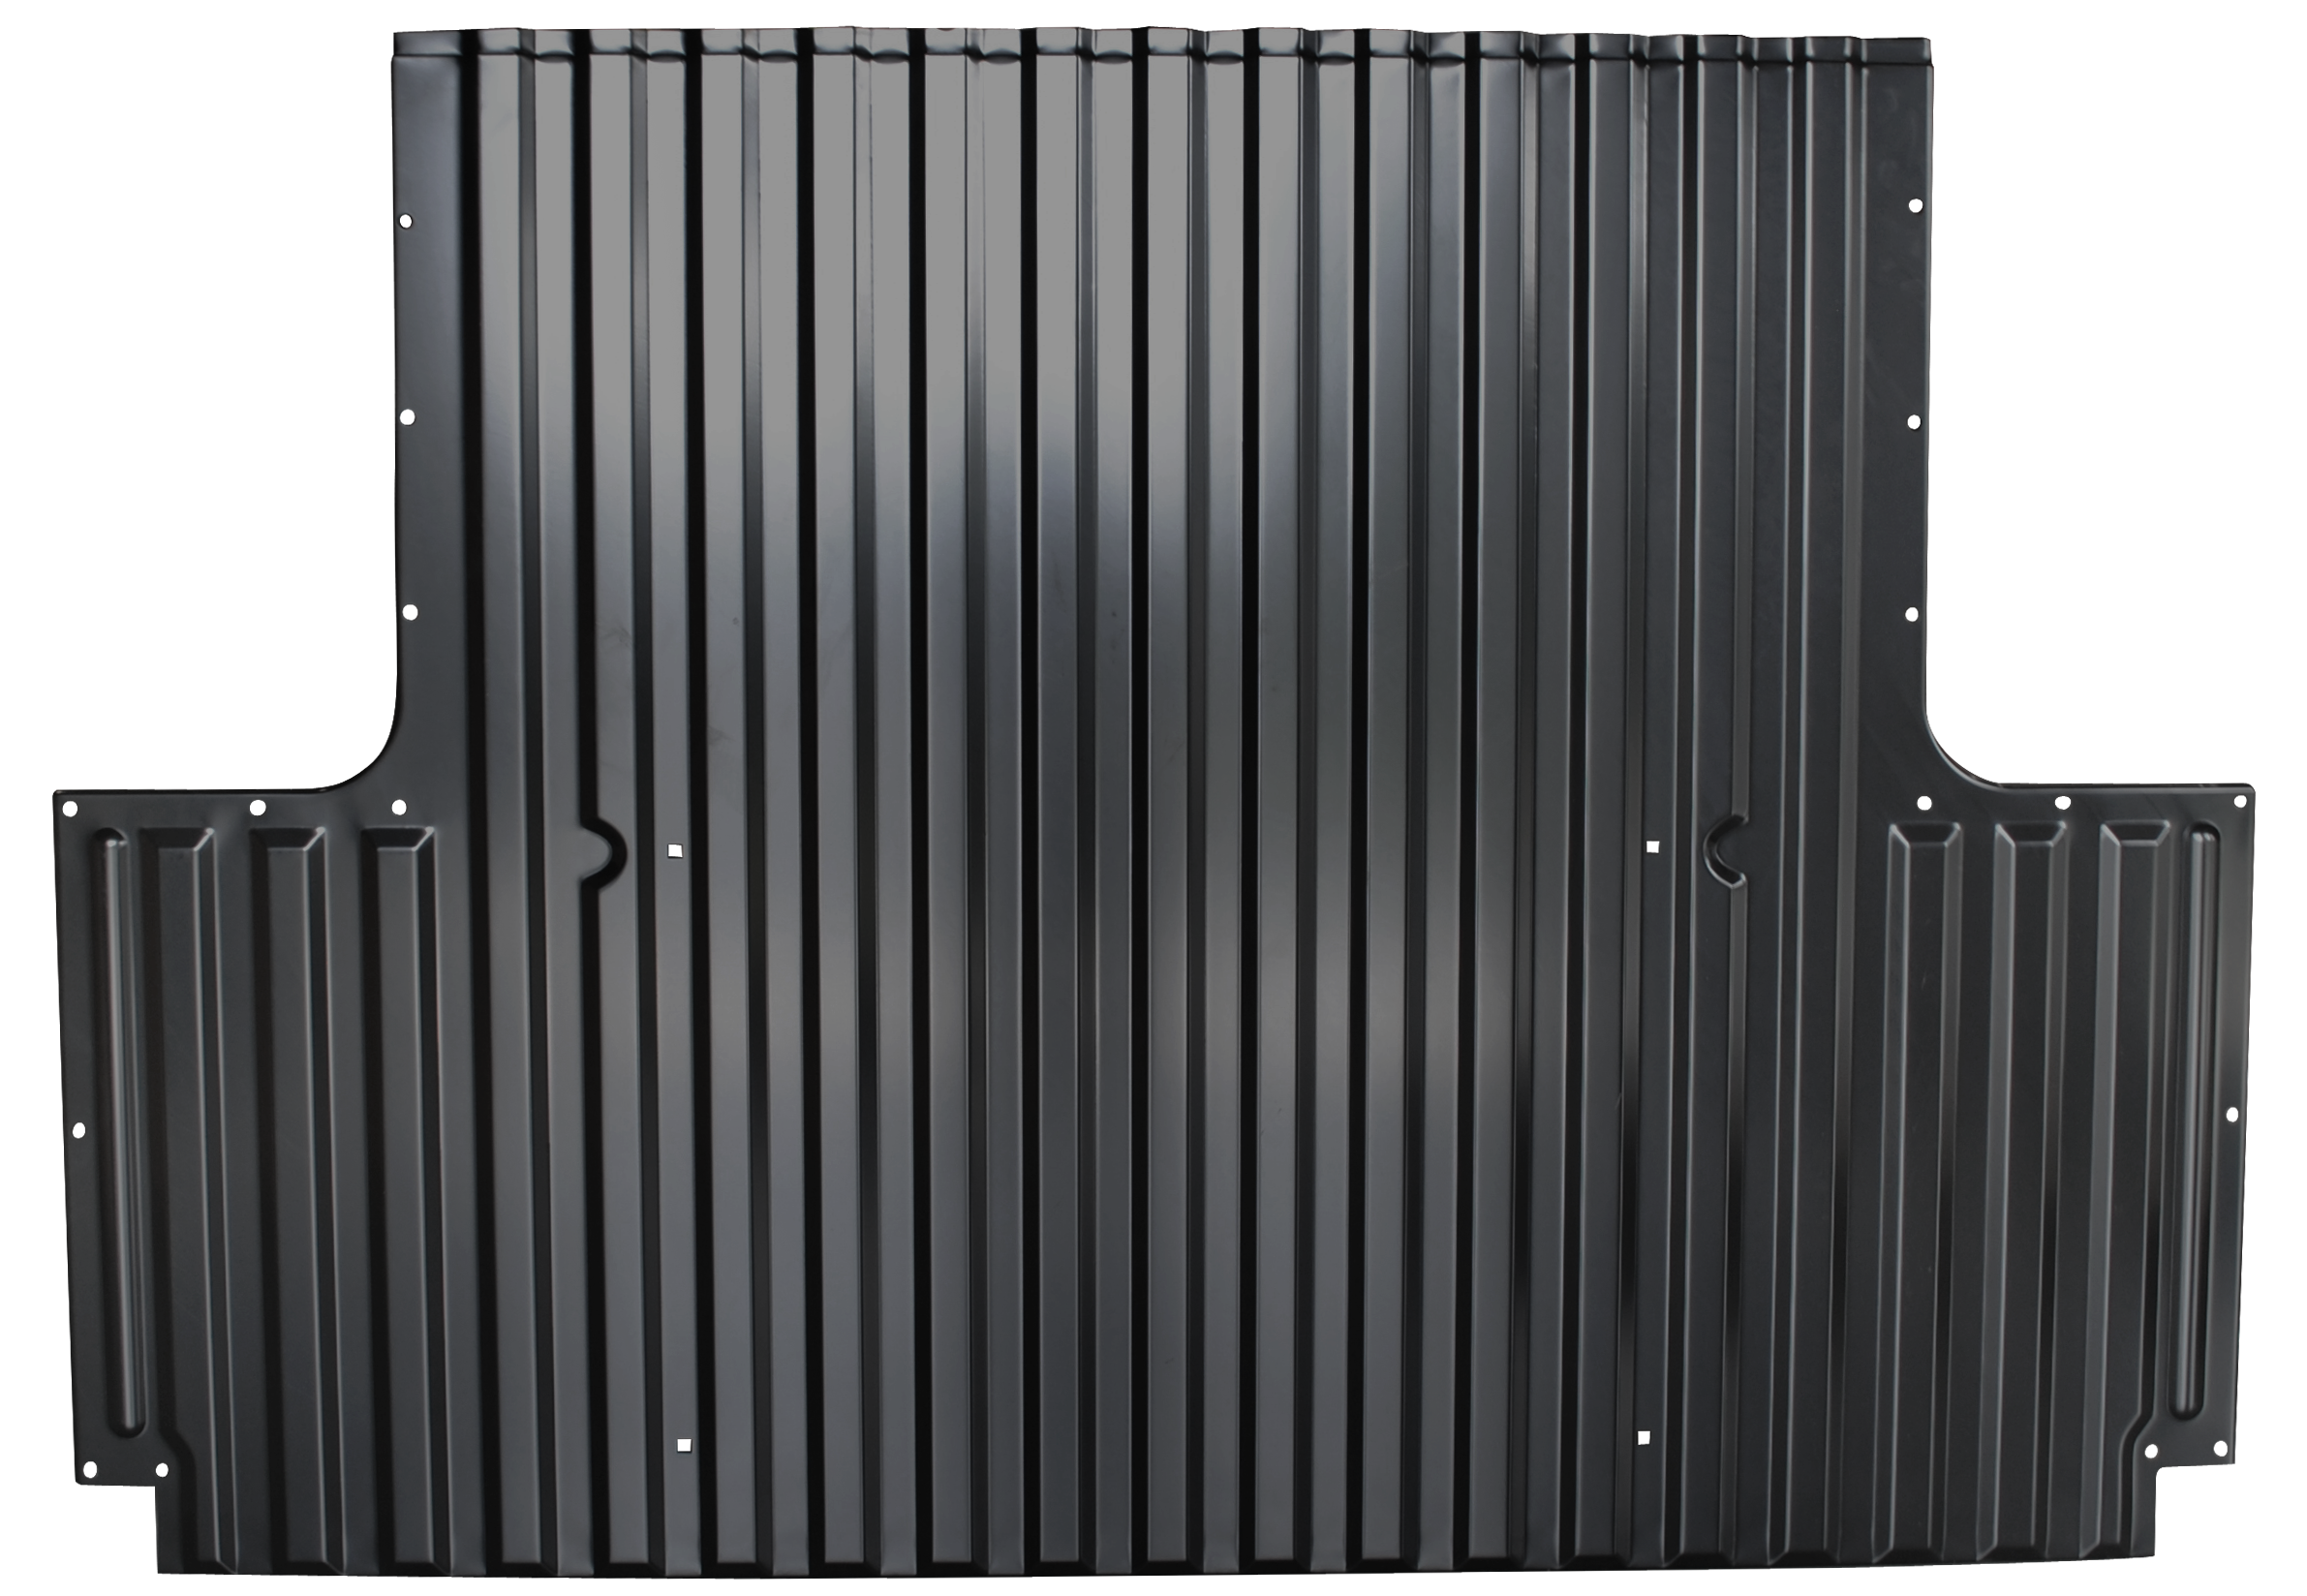 1967-72 C10 rear bed floor section 8'